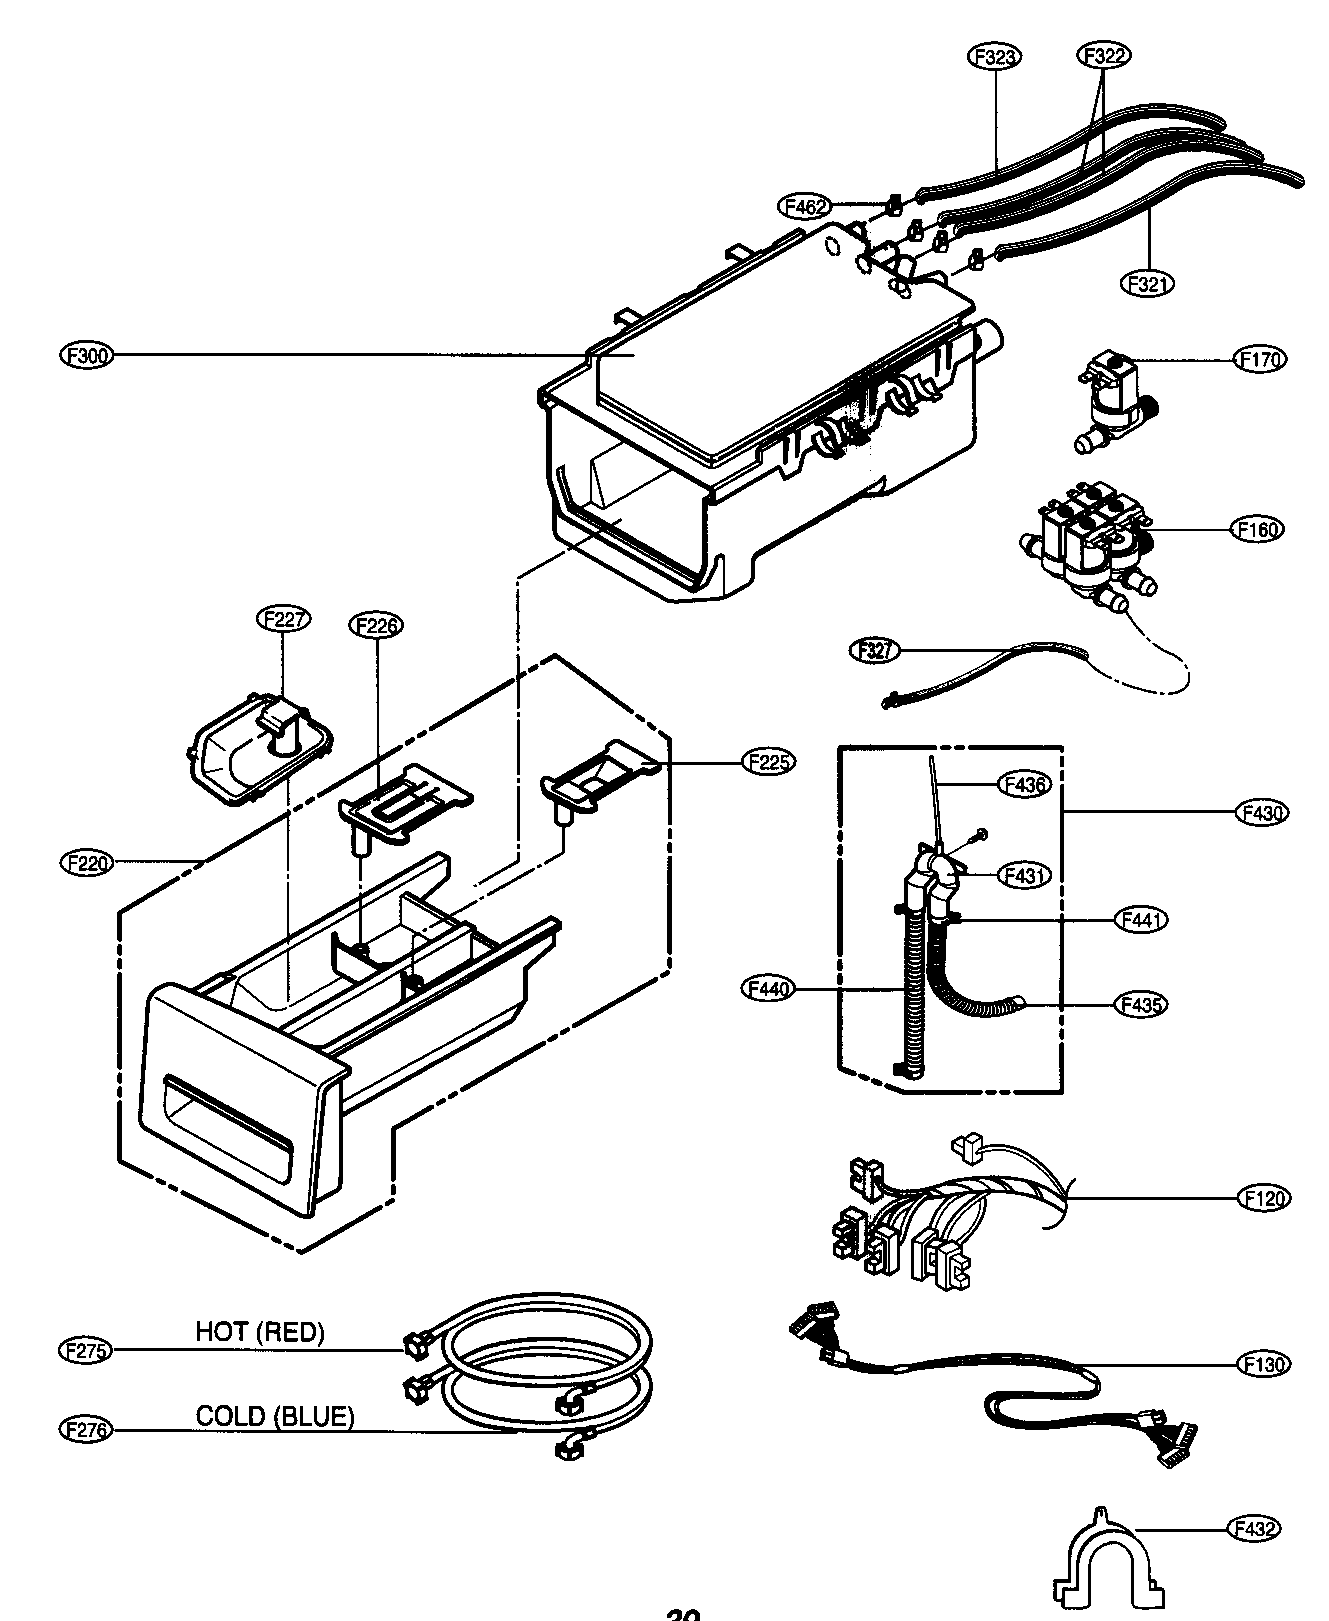 lg front load washer parts diagram 2002 mitsubishi lancer car radio stereo audio wiring 301 moved permanently